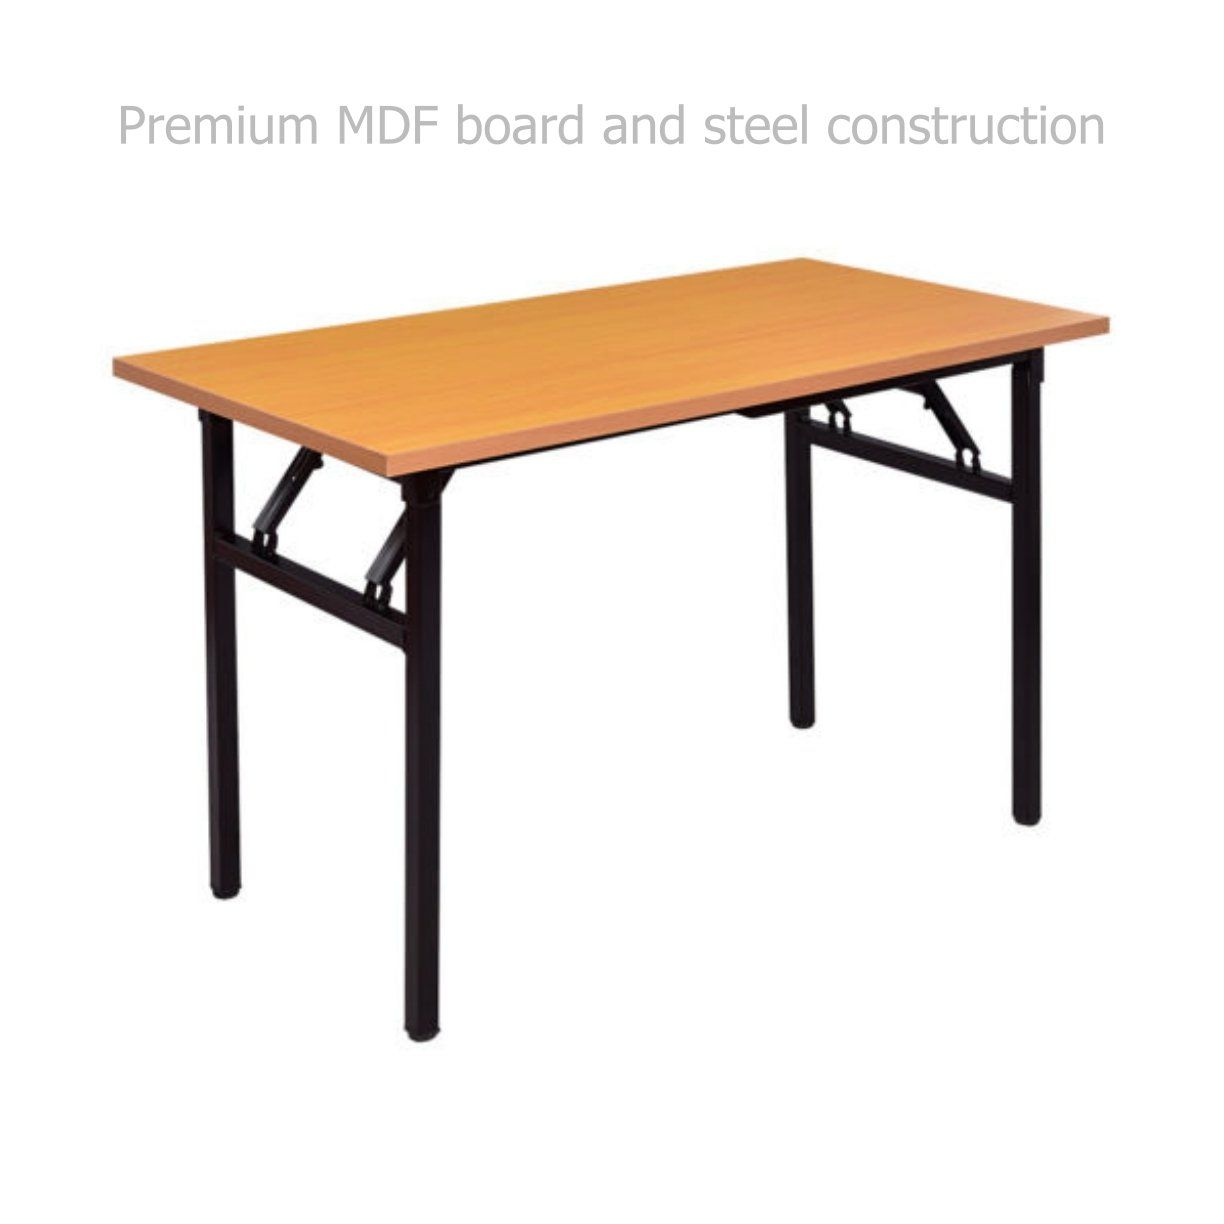 Modern folding table laptop computer writing multifunction desk durable mdf board powder coated steel frame home office furniture officefurniture